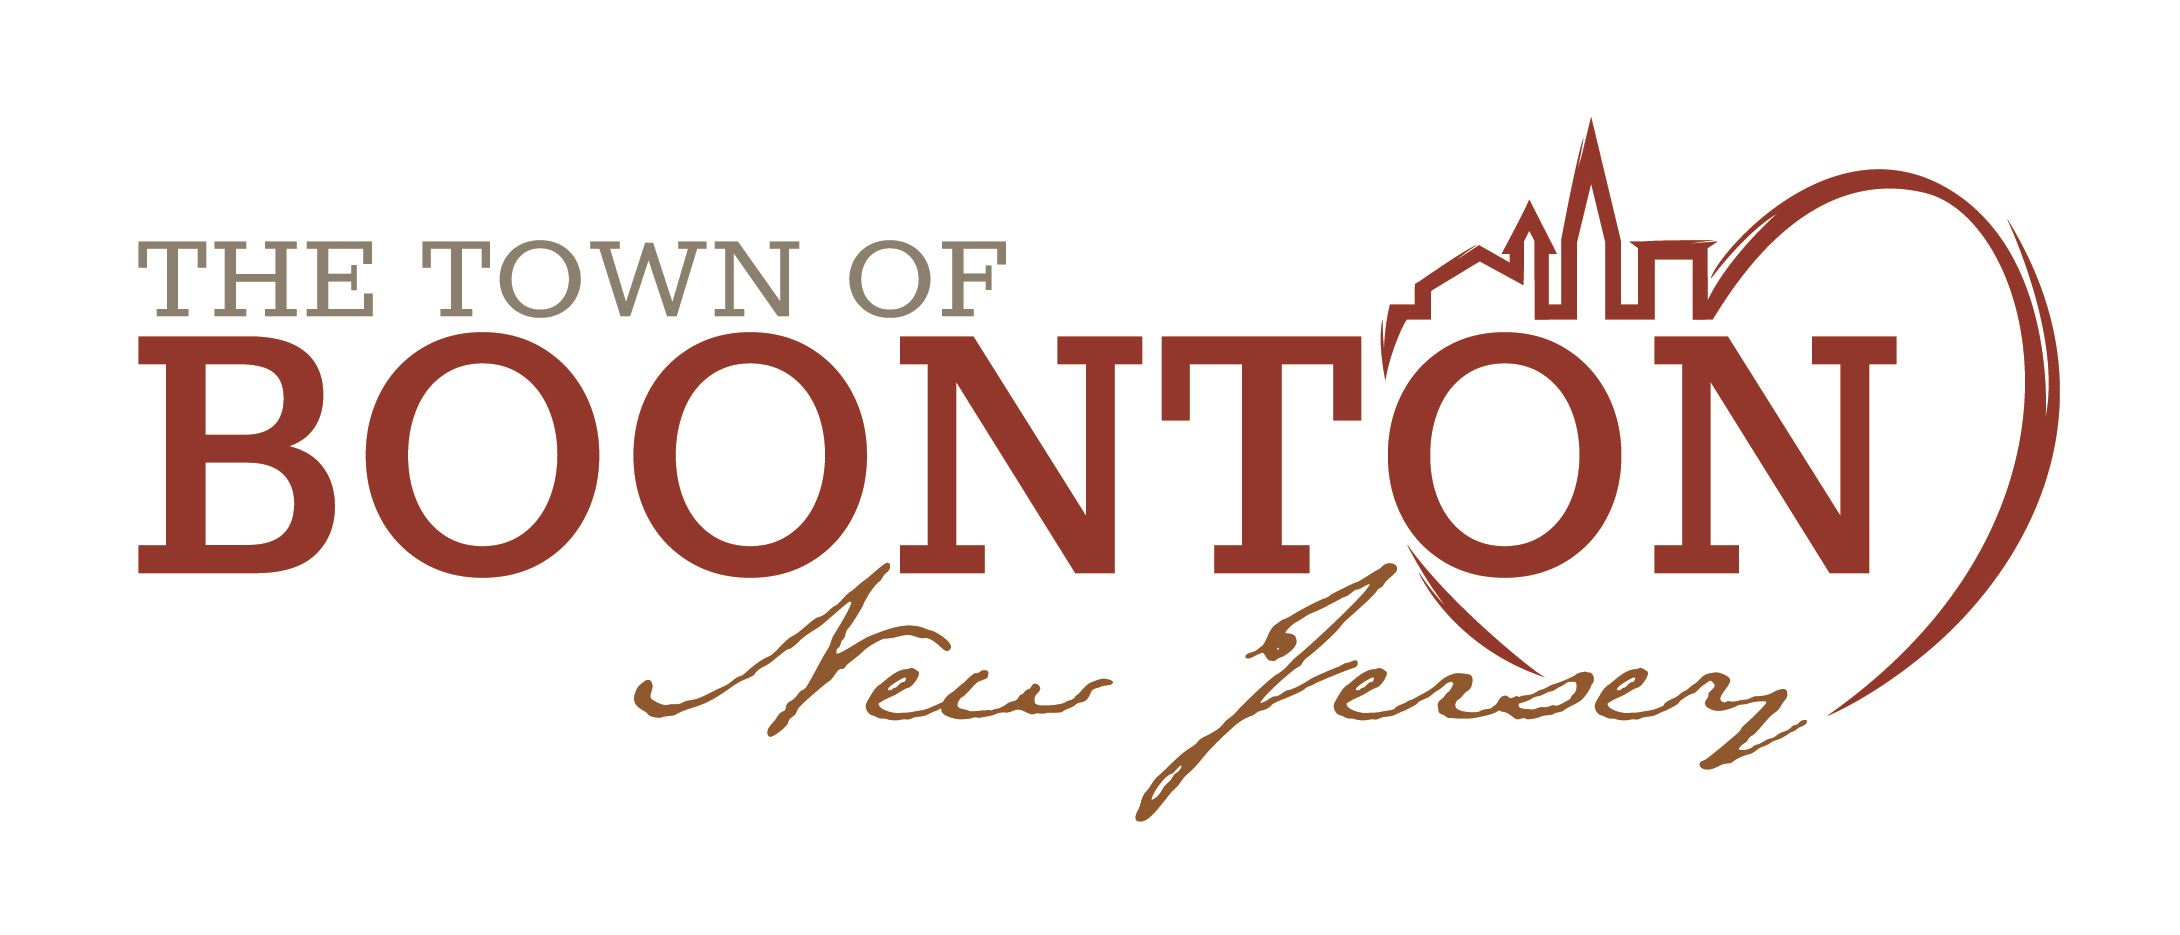 New Boonton Logo in High Res